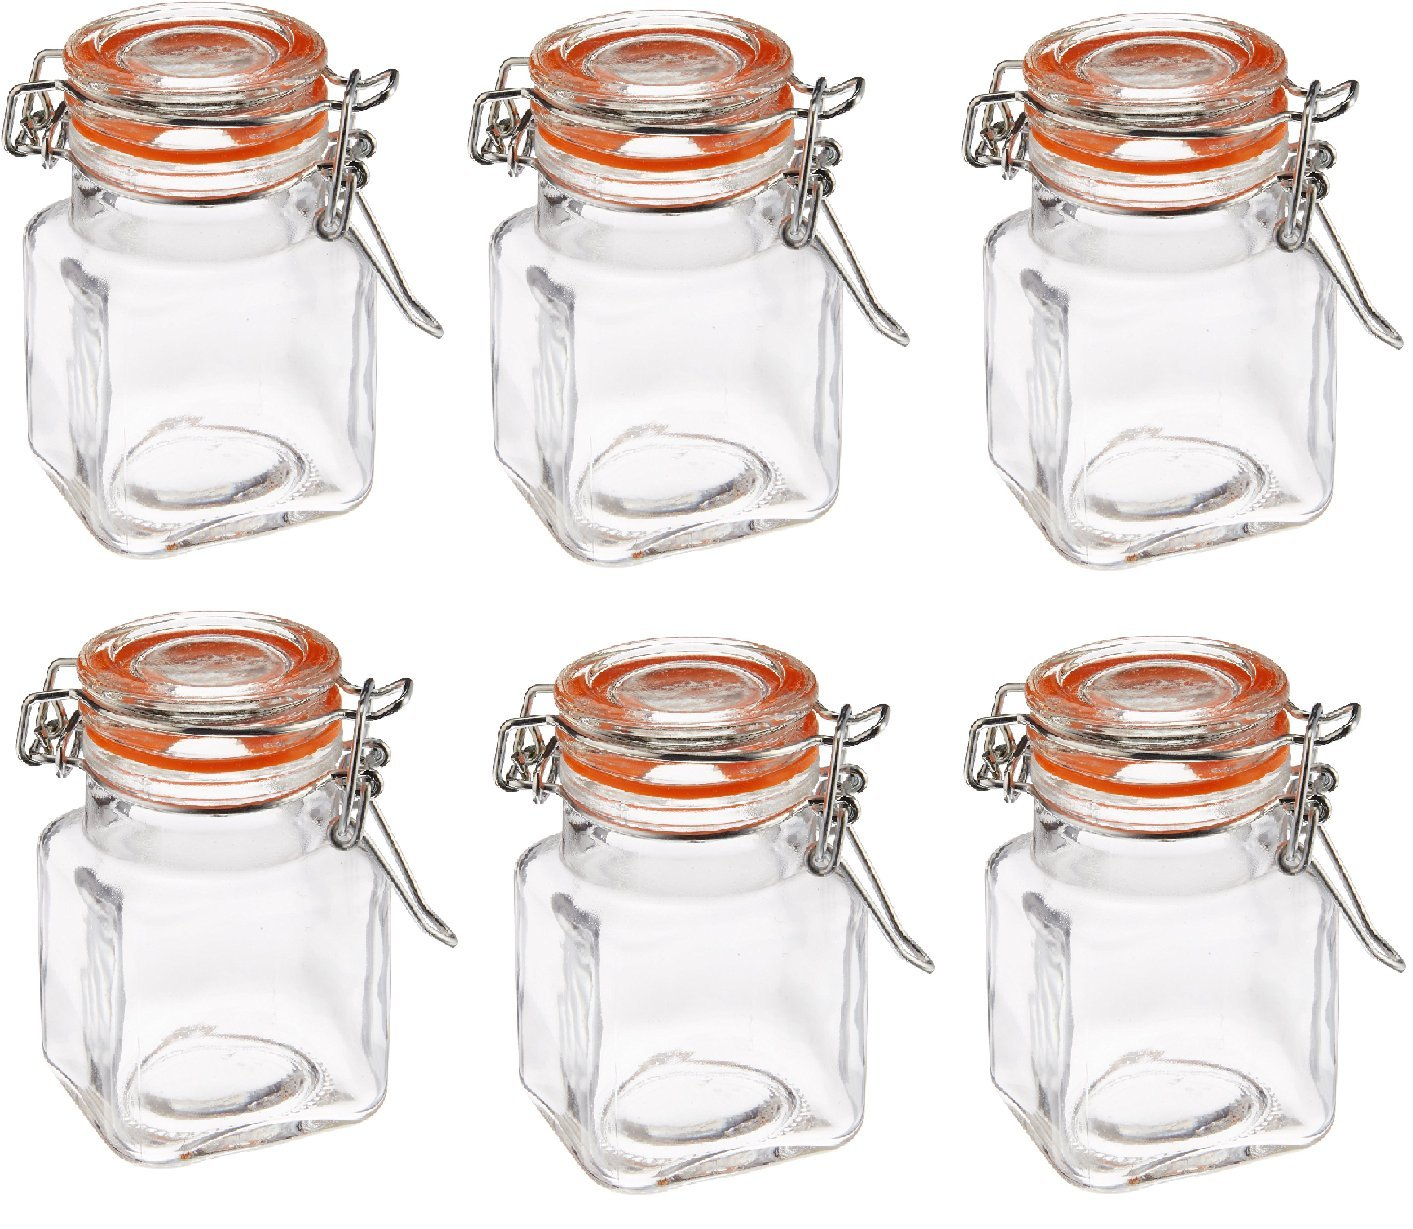 Grant Howard 3.4-Ounce Square Clear Glass Spice Jar, Set of 6, Small